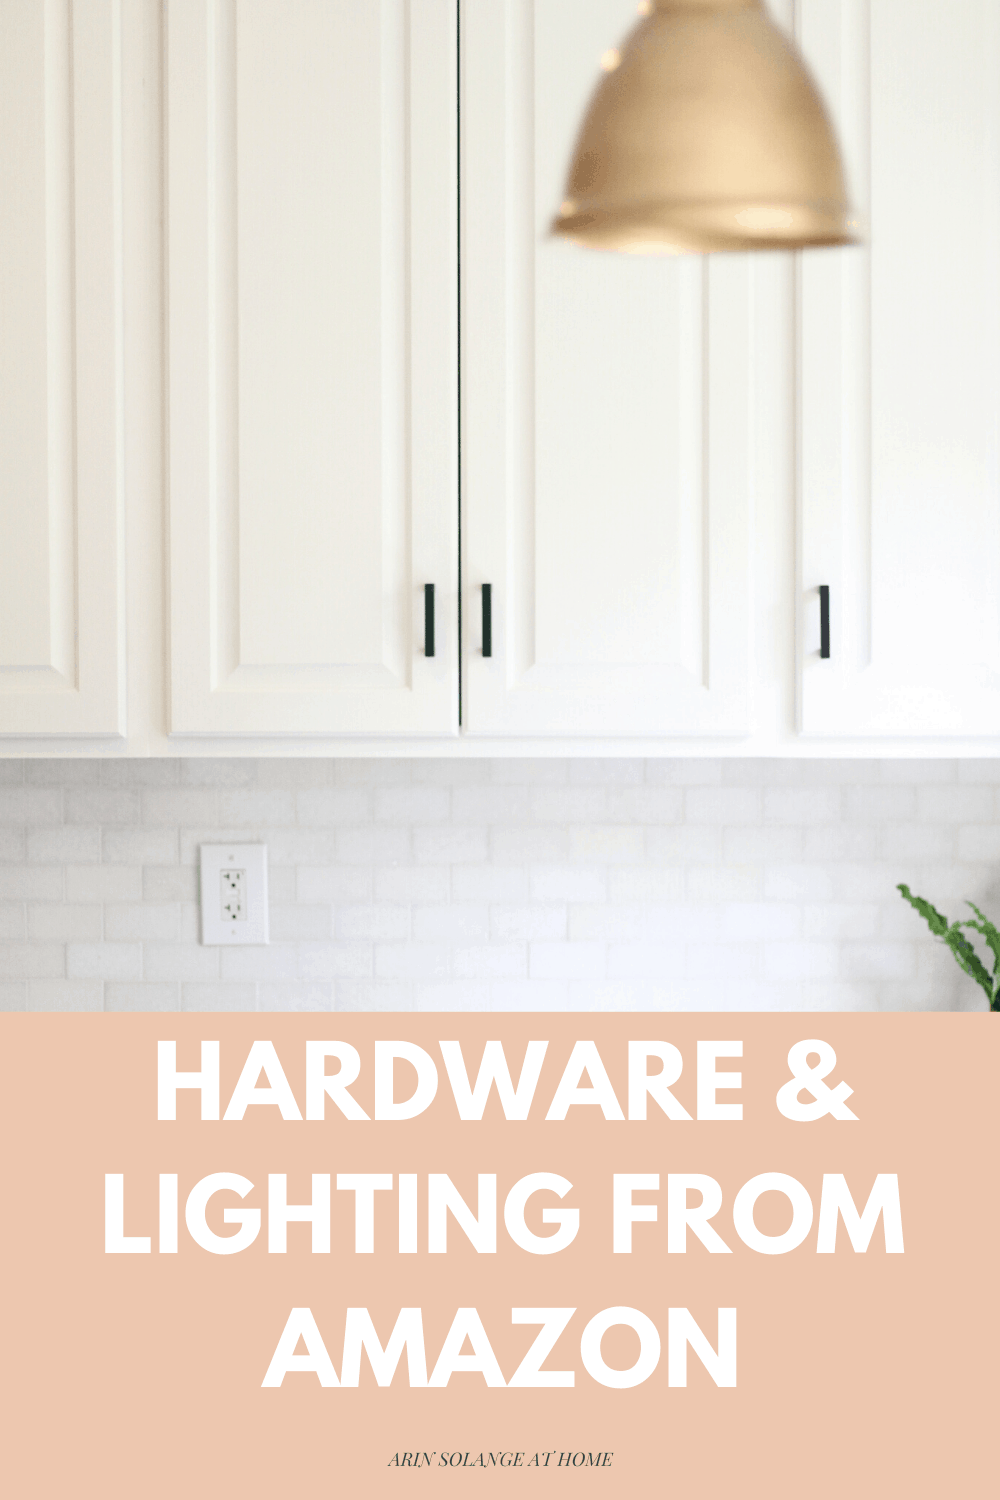 Hardware and lighting from amazon